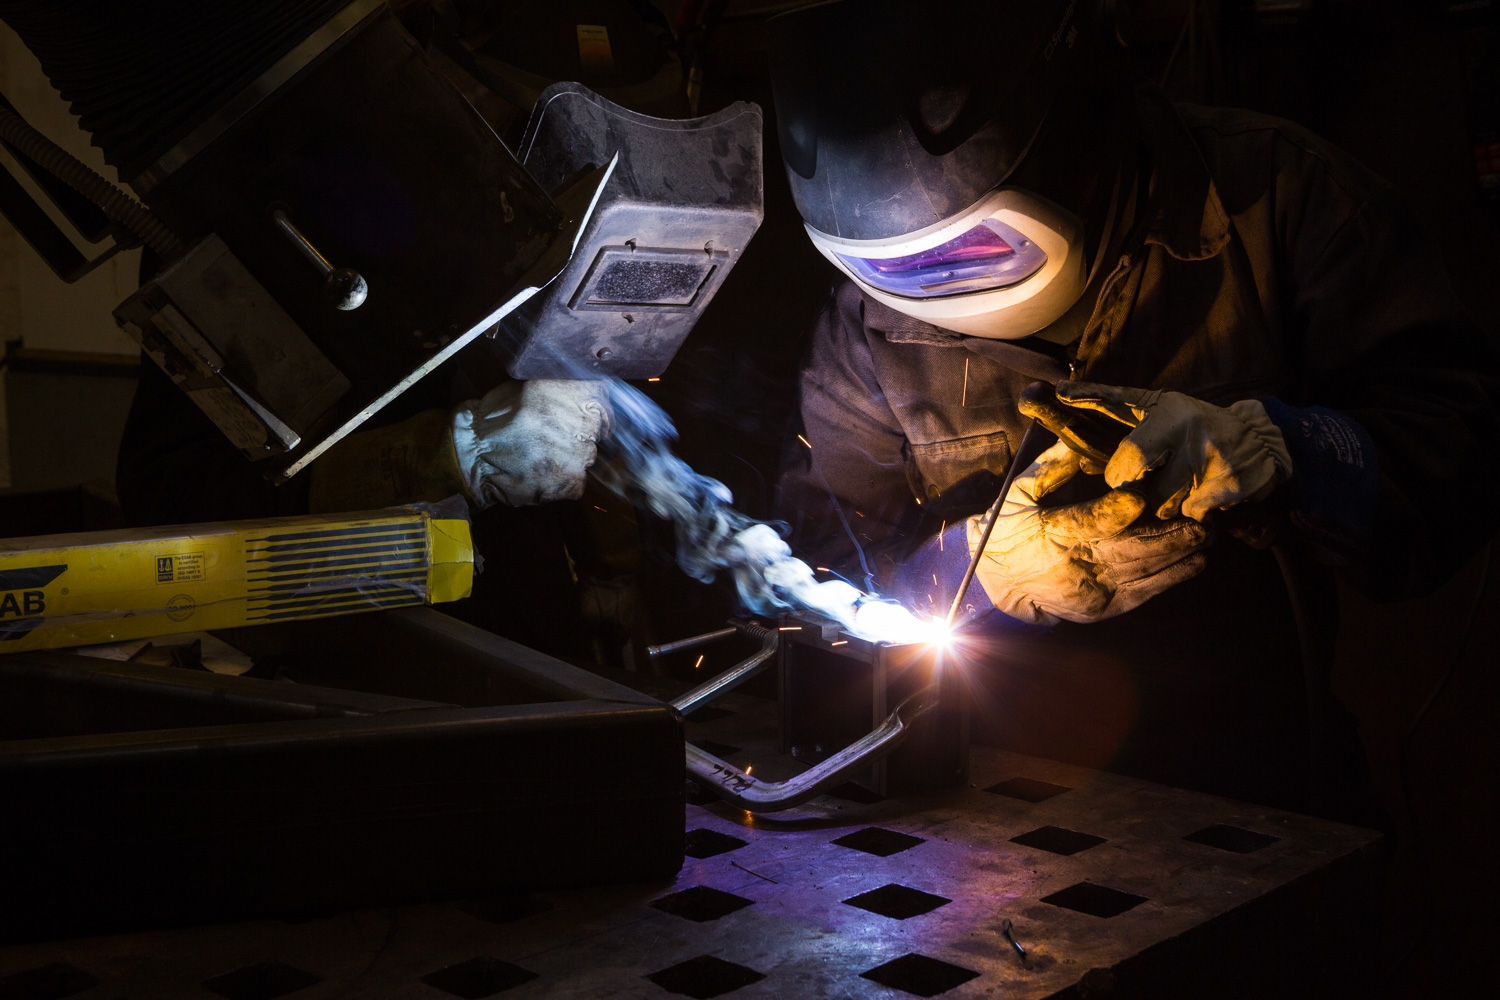 Welding in the workshop